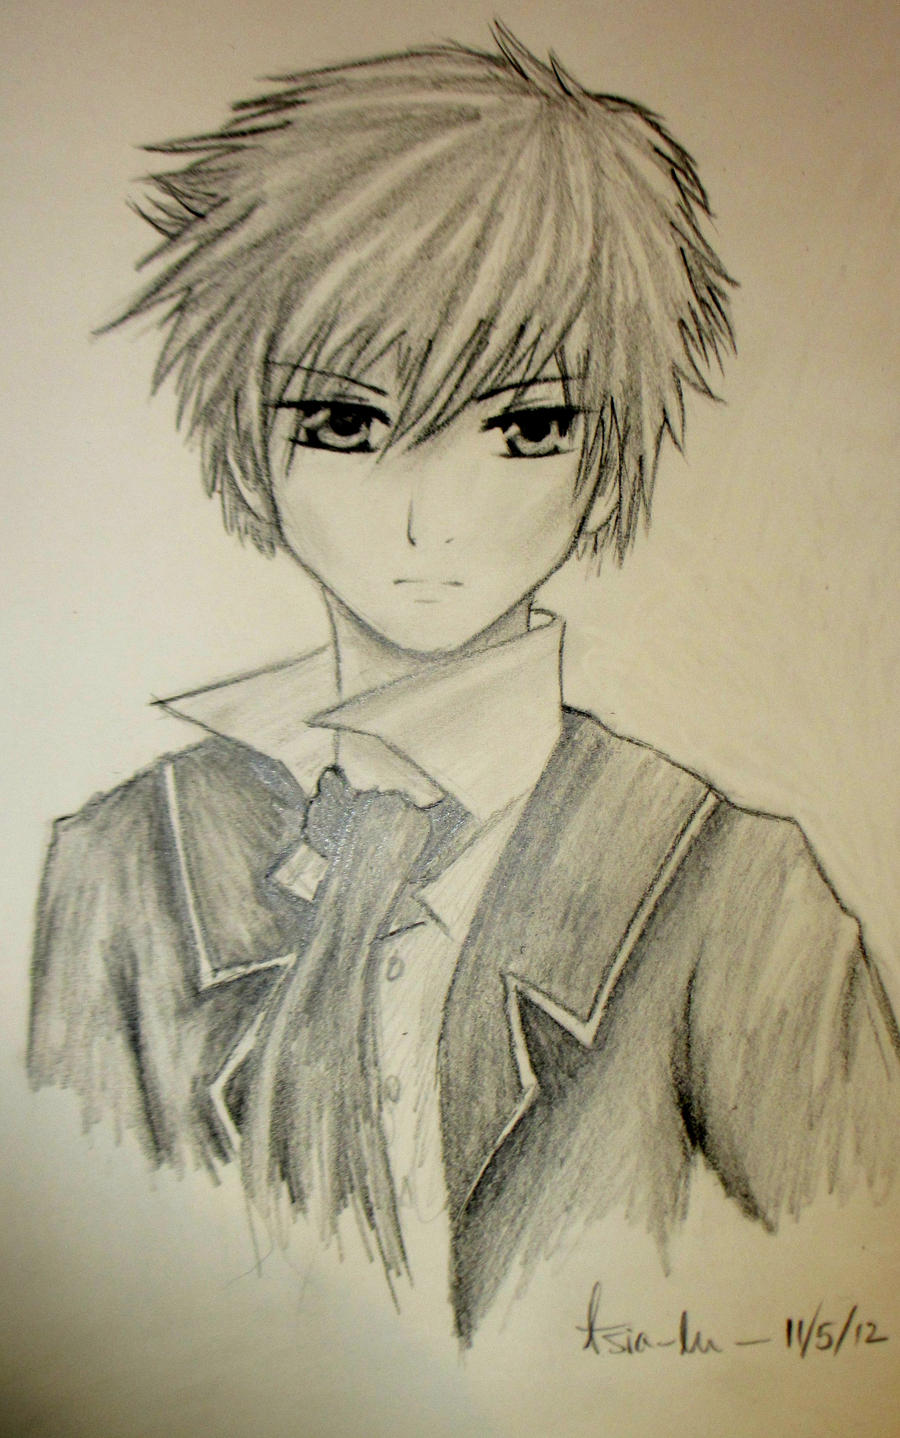 Anime boy roe by yourtoast on deviantart for Cool easy anime drawings